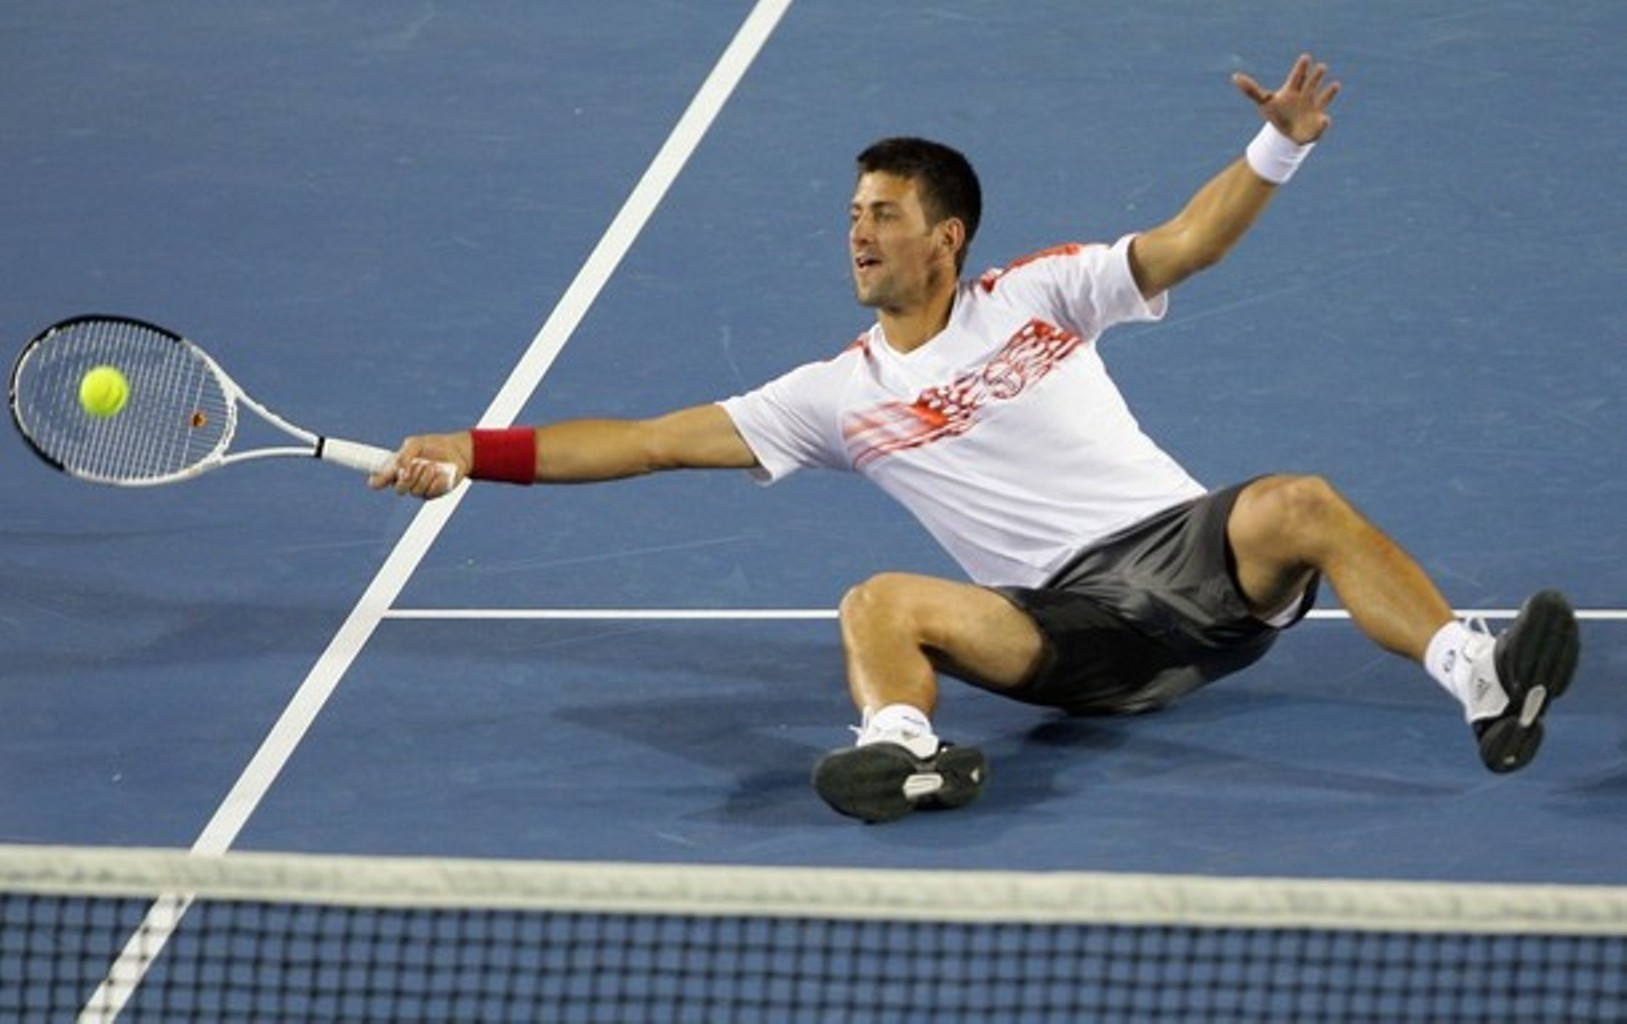 djokovic sexy bulge 2 - Novak Djokovic Photo (11392332) - Fanpop